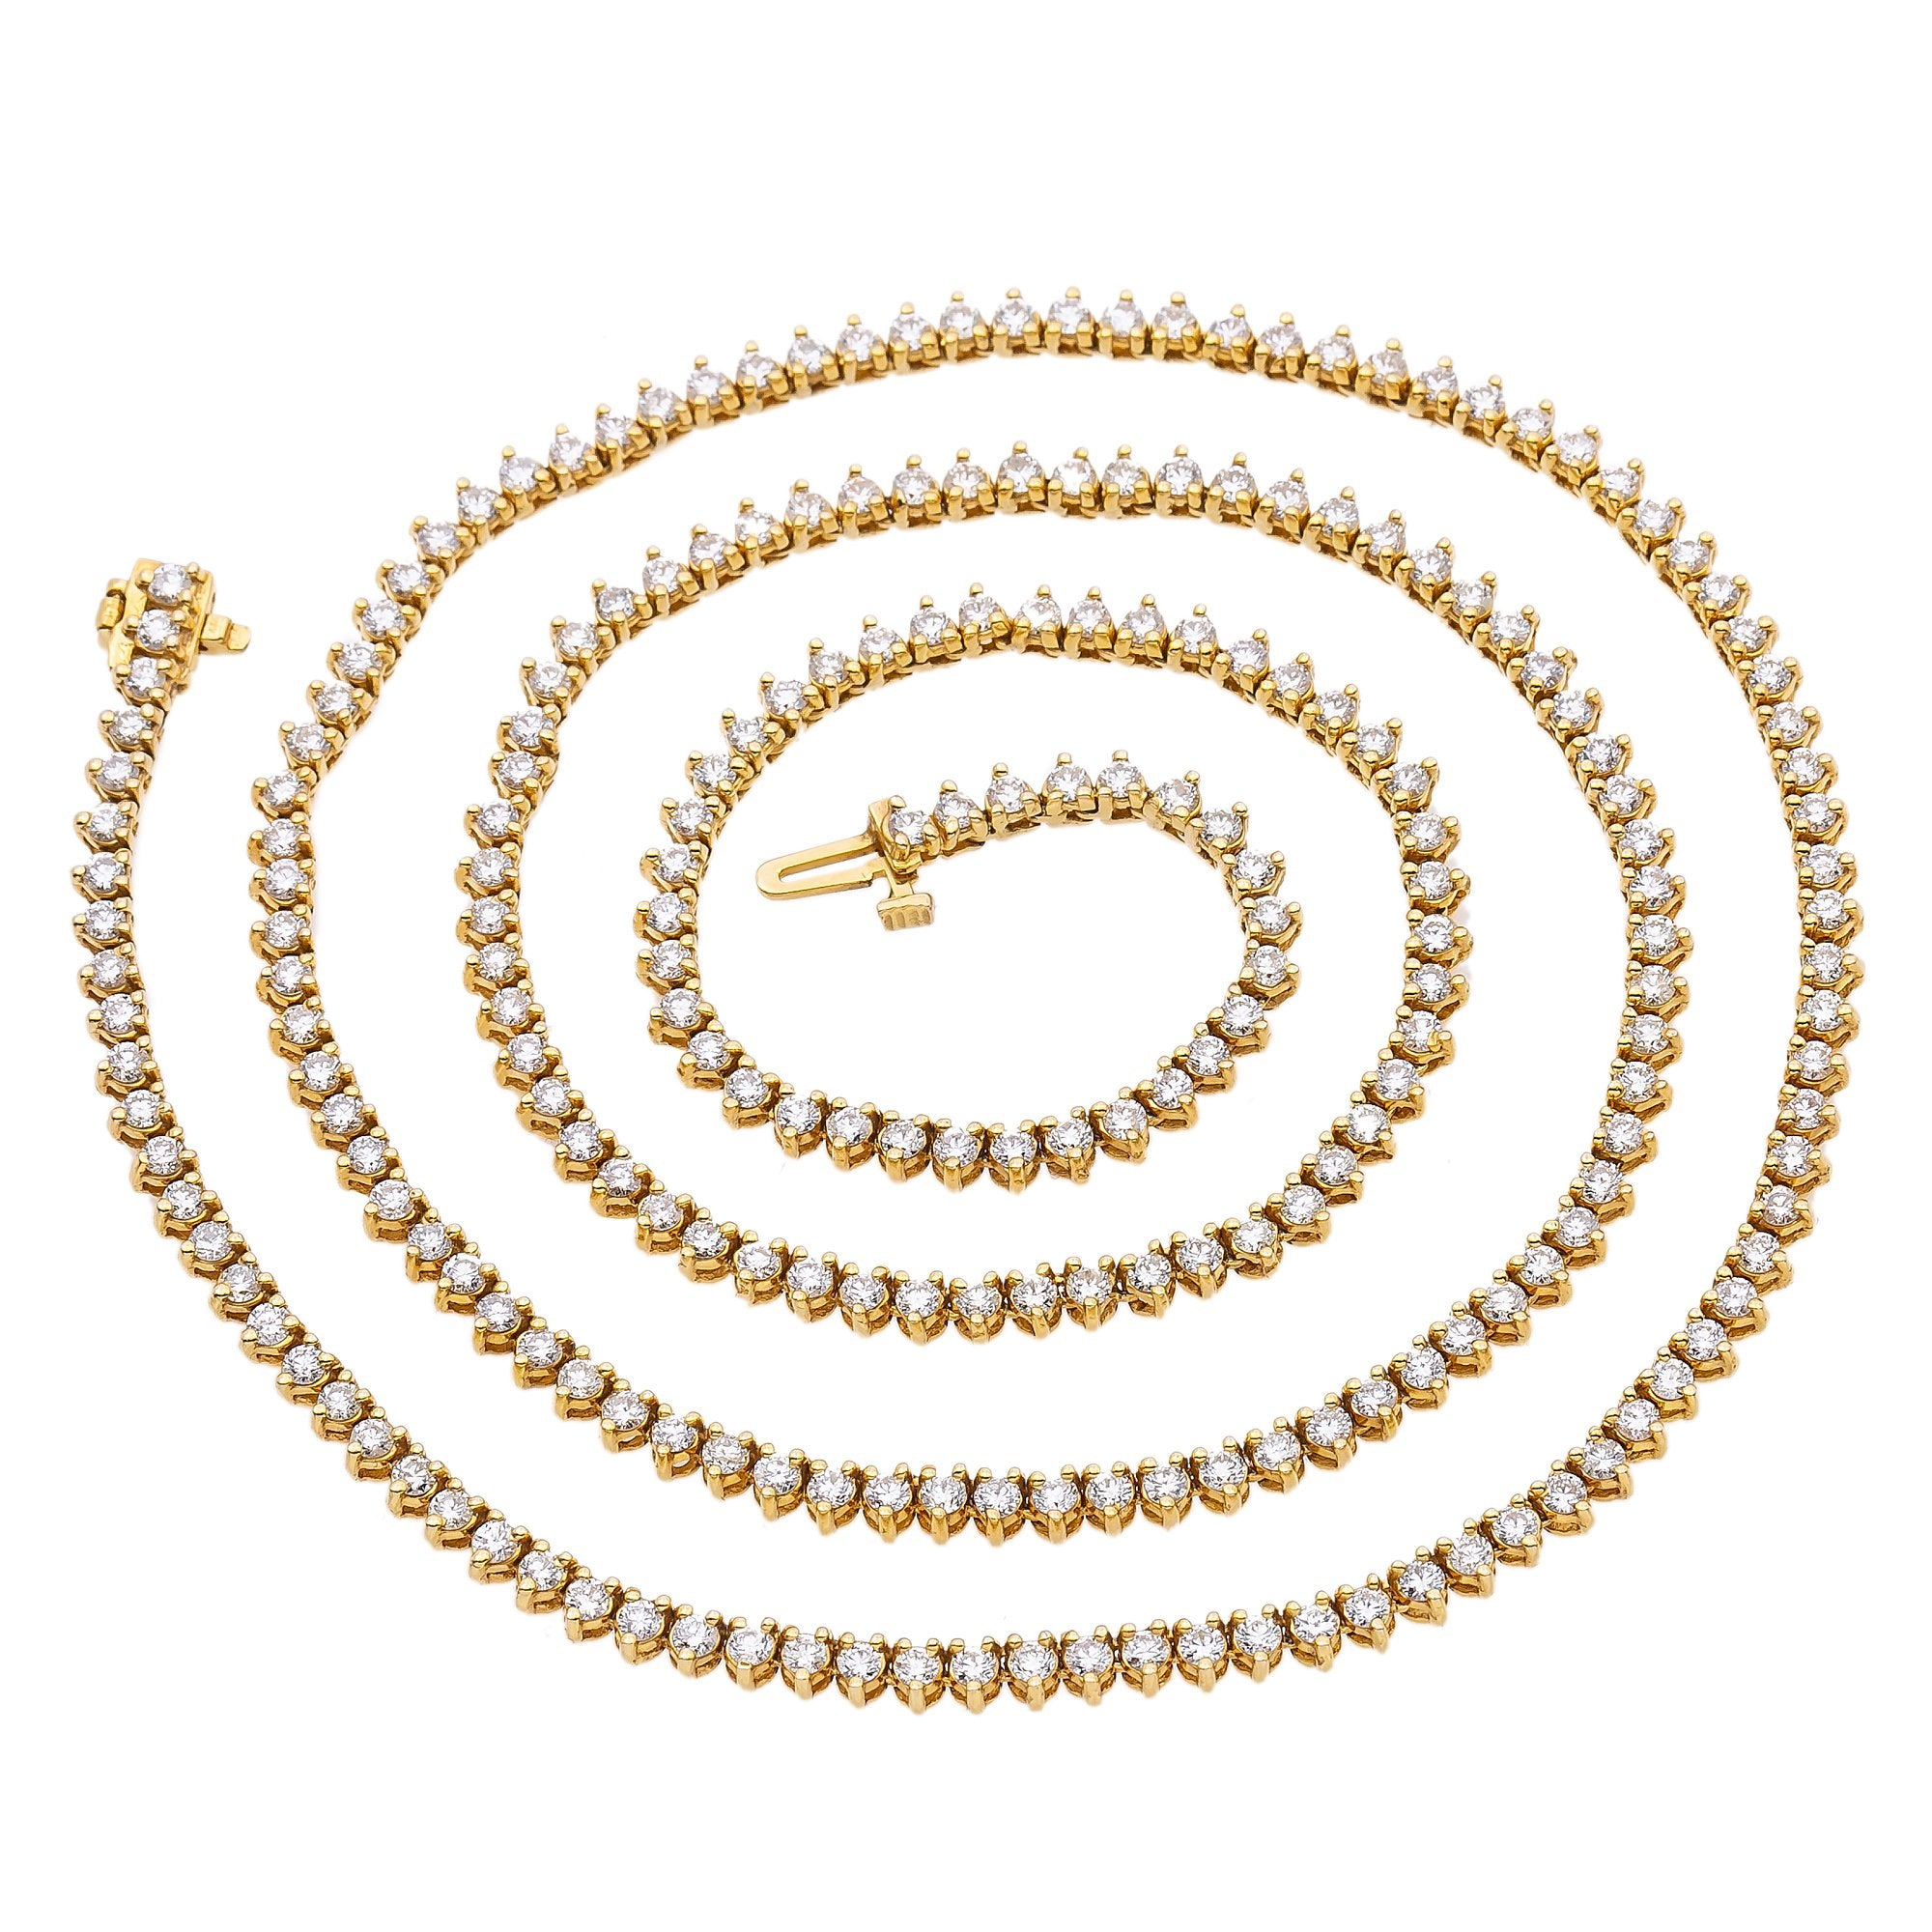 14K Yellow Gold Men's Tennis Chain  With 11.50 CT Diamonds